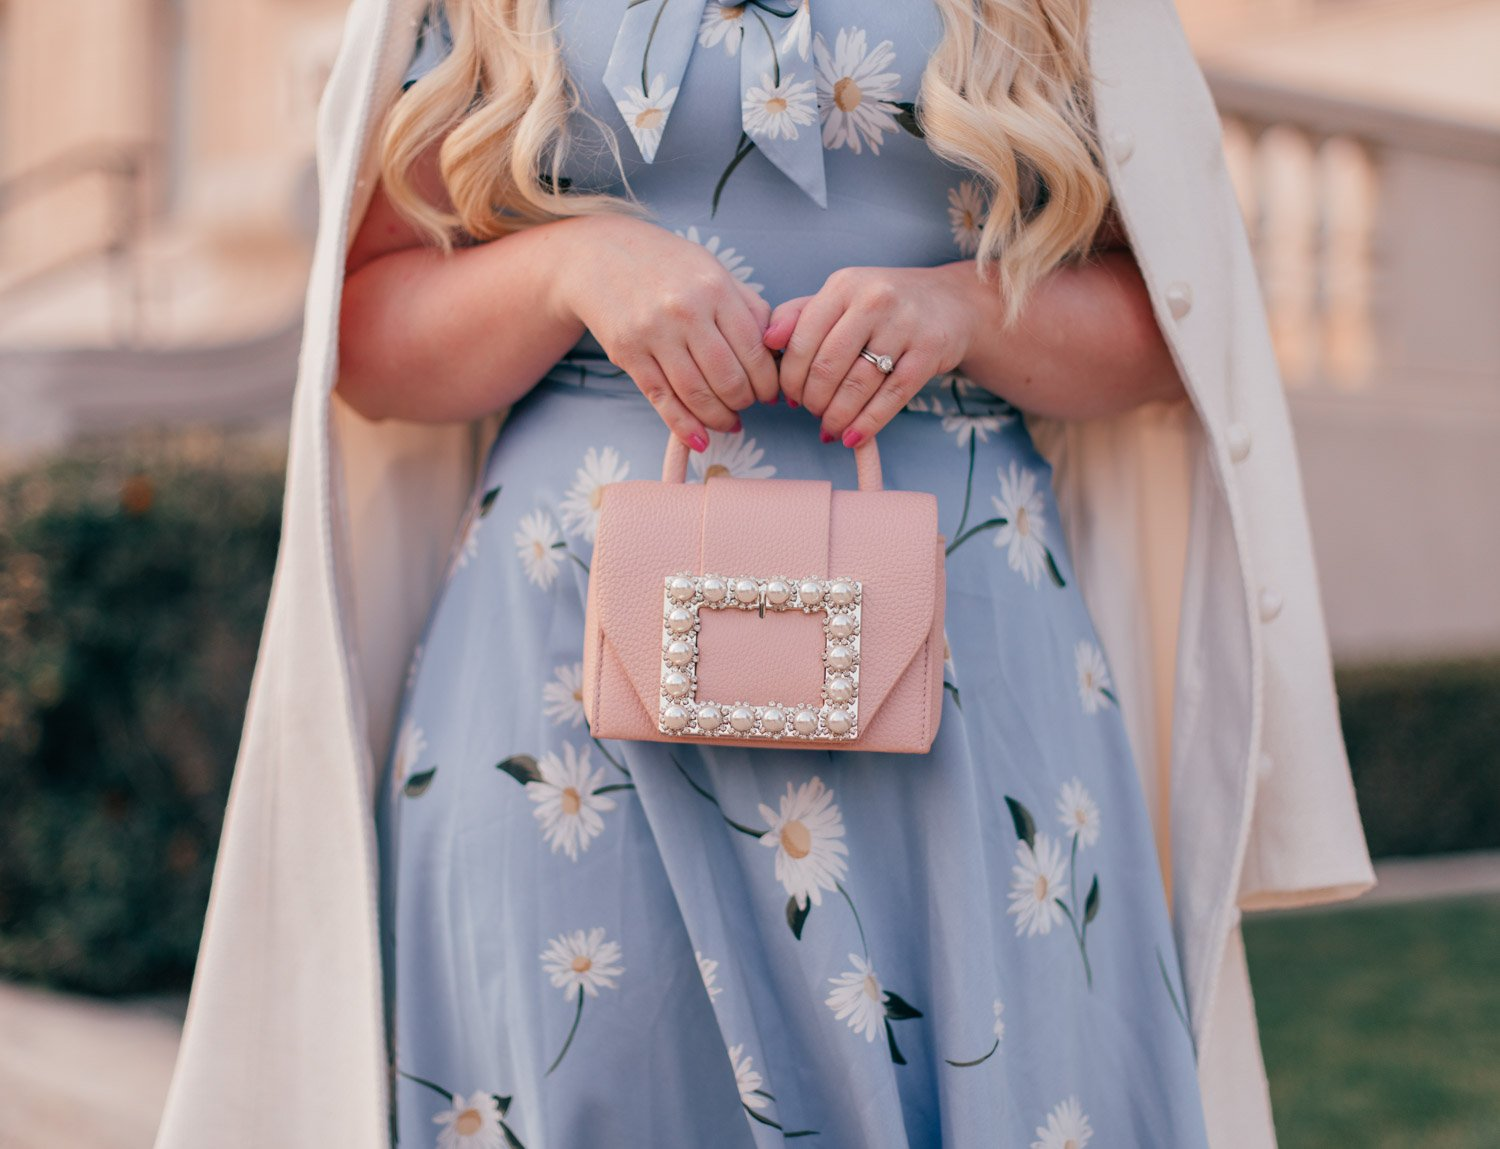 Fashion Blogger Elizabeth Hugen of Lizzie in Lace shares her girly handbag collection including this pearl Kate Spade bag